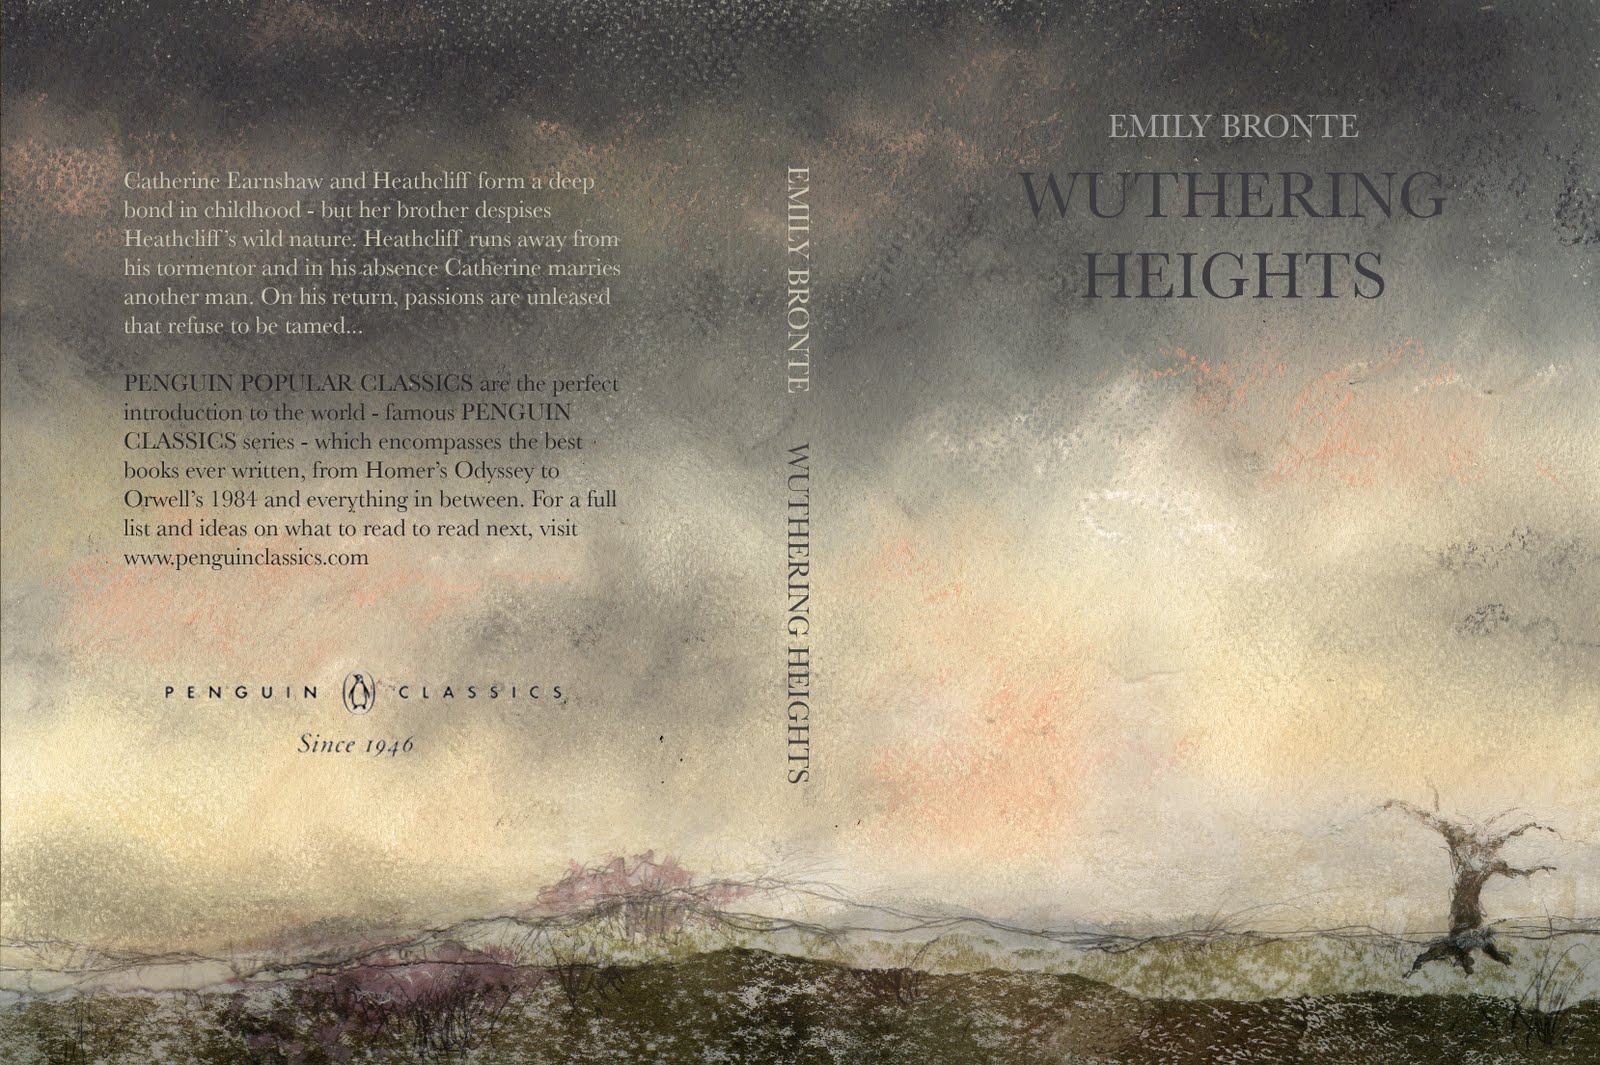 thesis terms to get wuthering altitudes by just emily bronte